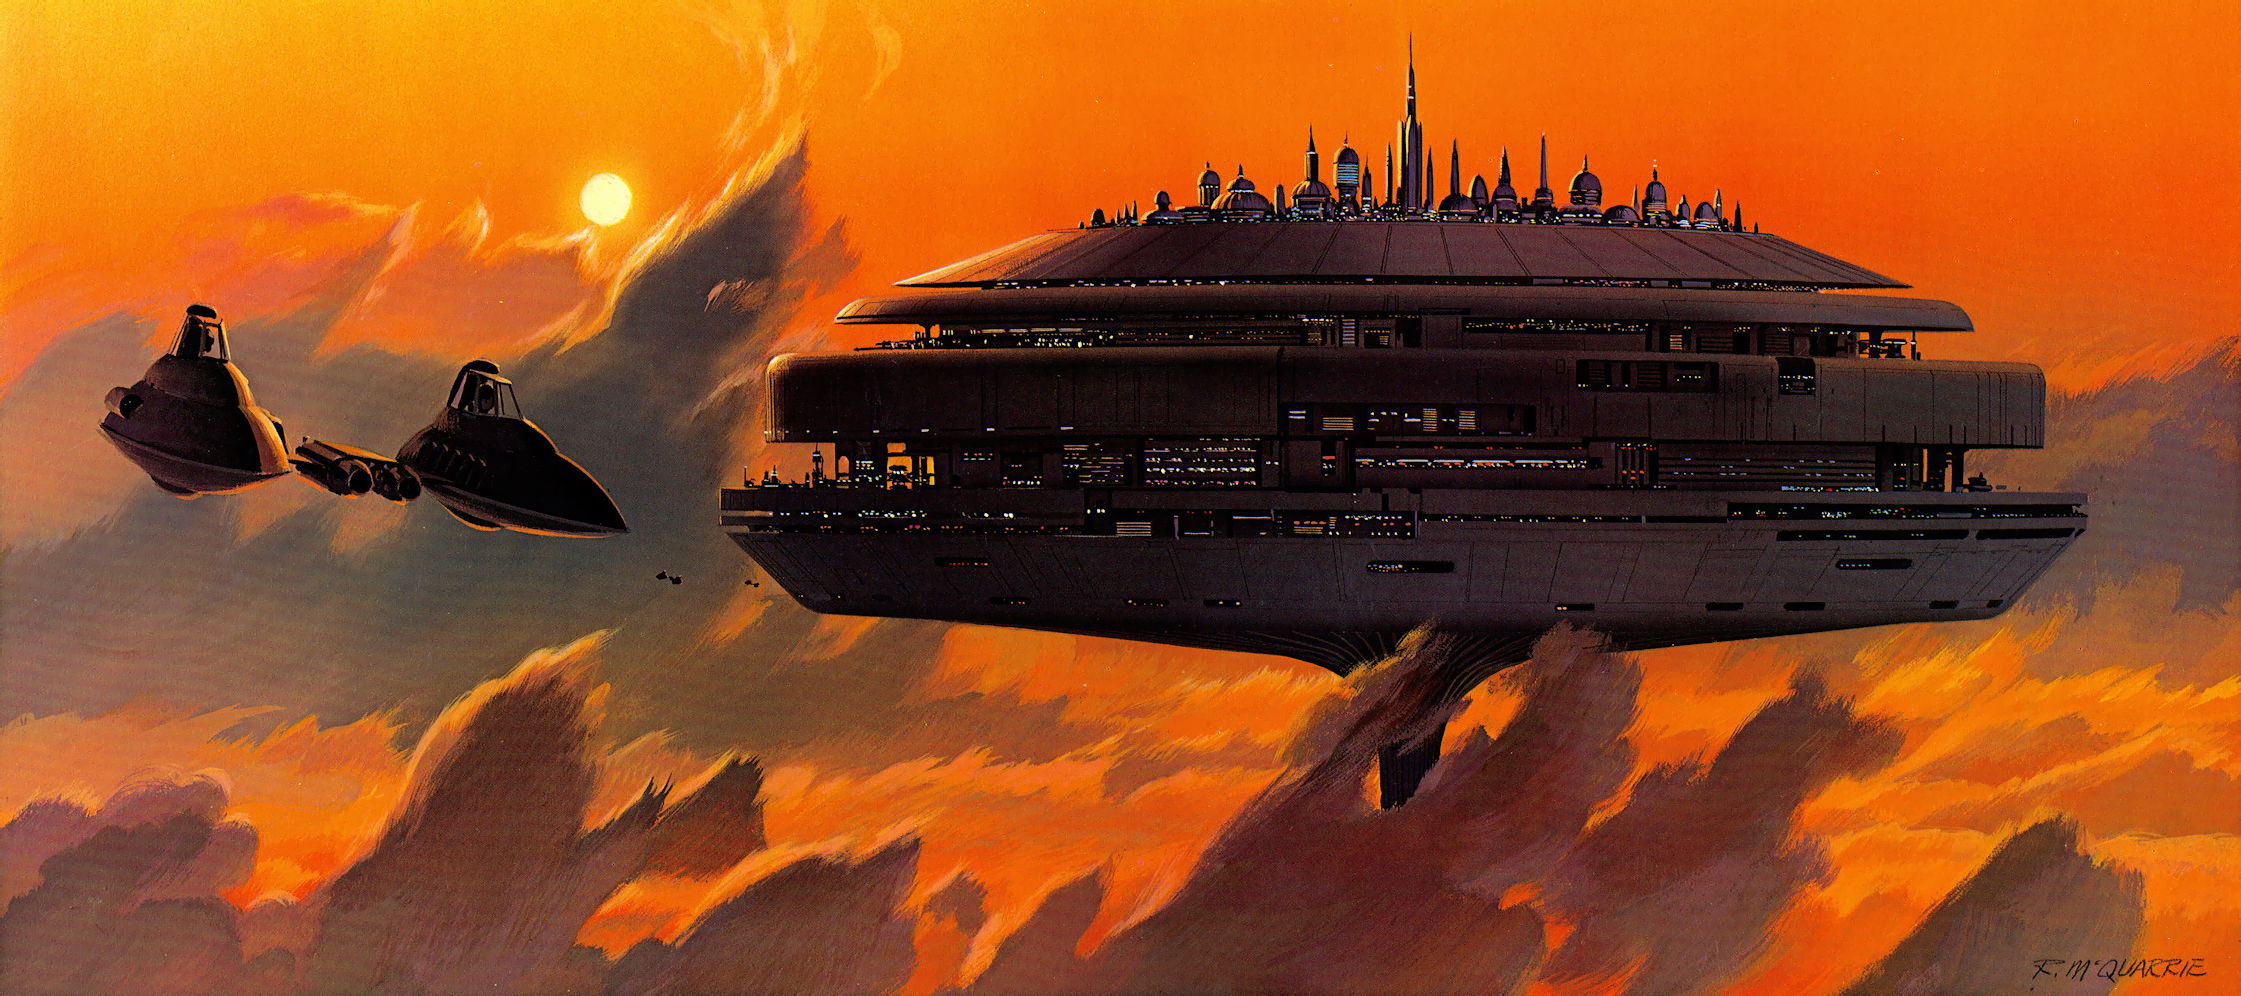 Ralph McQuarrie - Empire Strikes Back - Concept Art